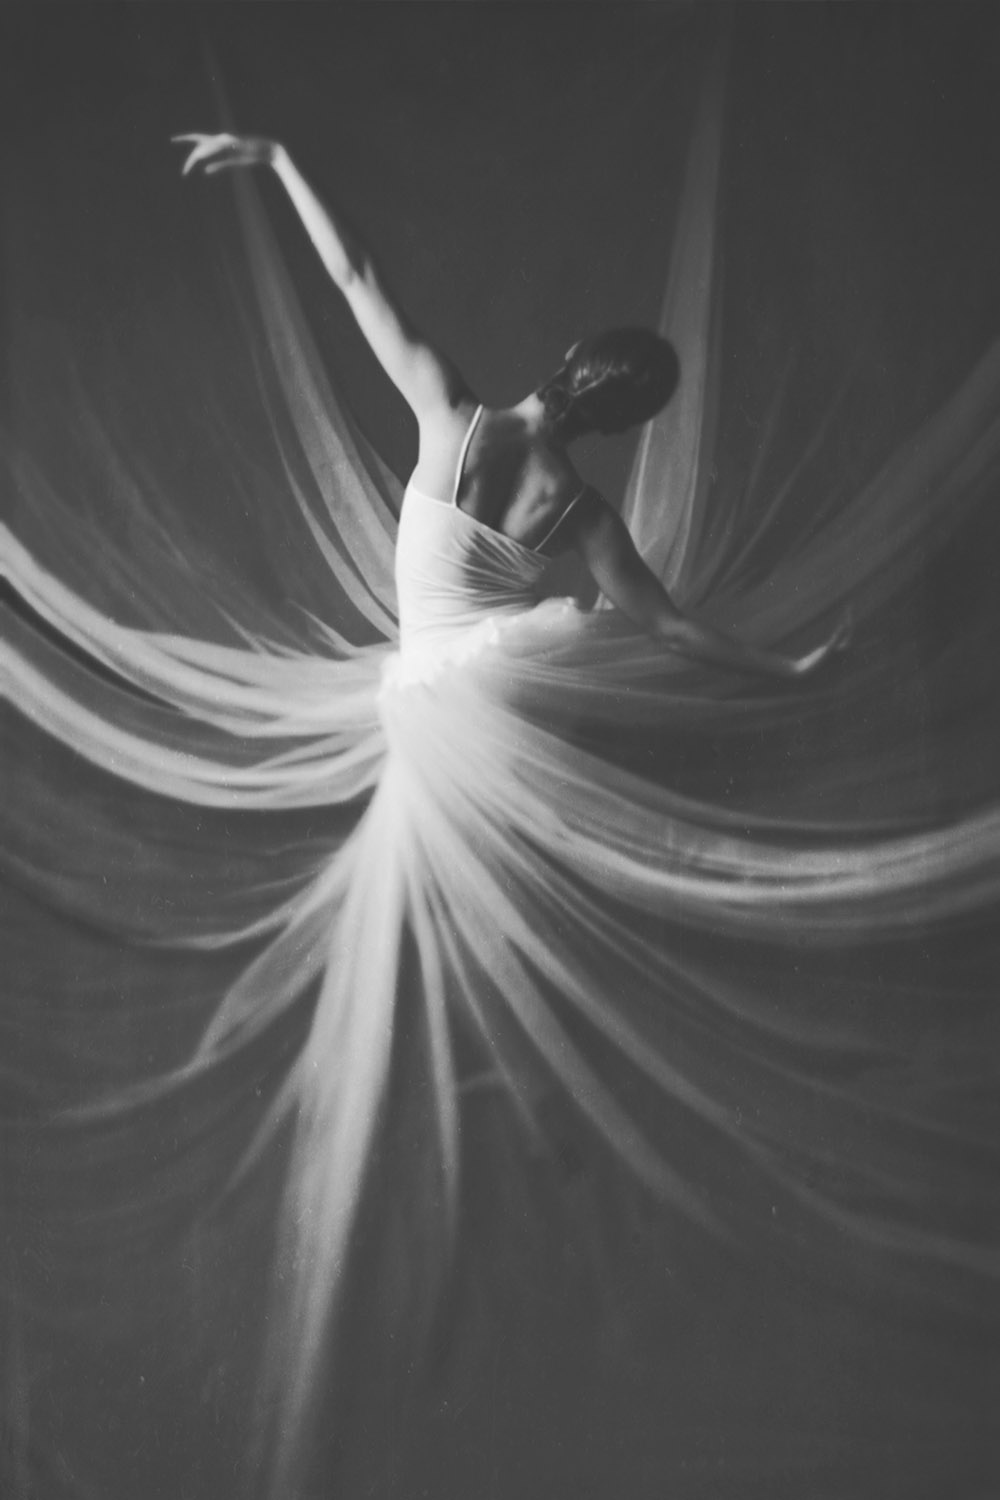 Be Set Free Josephine Cardin 6 x 9, Edition of 5, signed and numbered Archival inkjet print